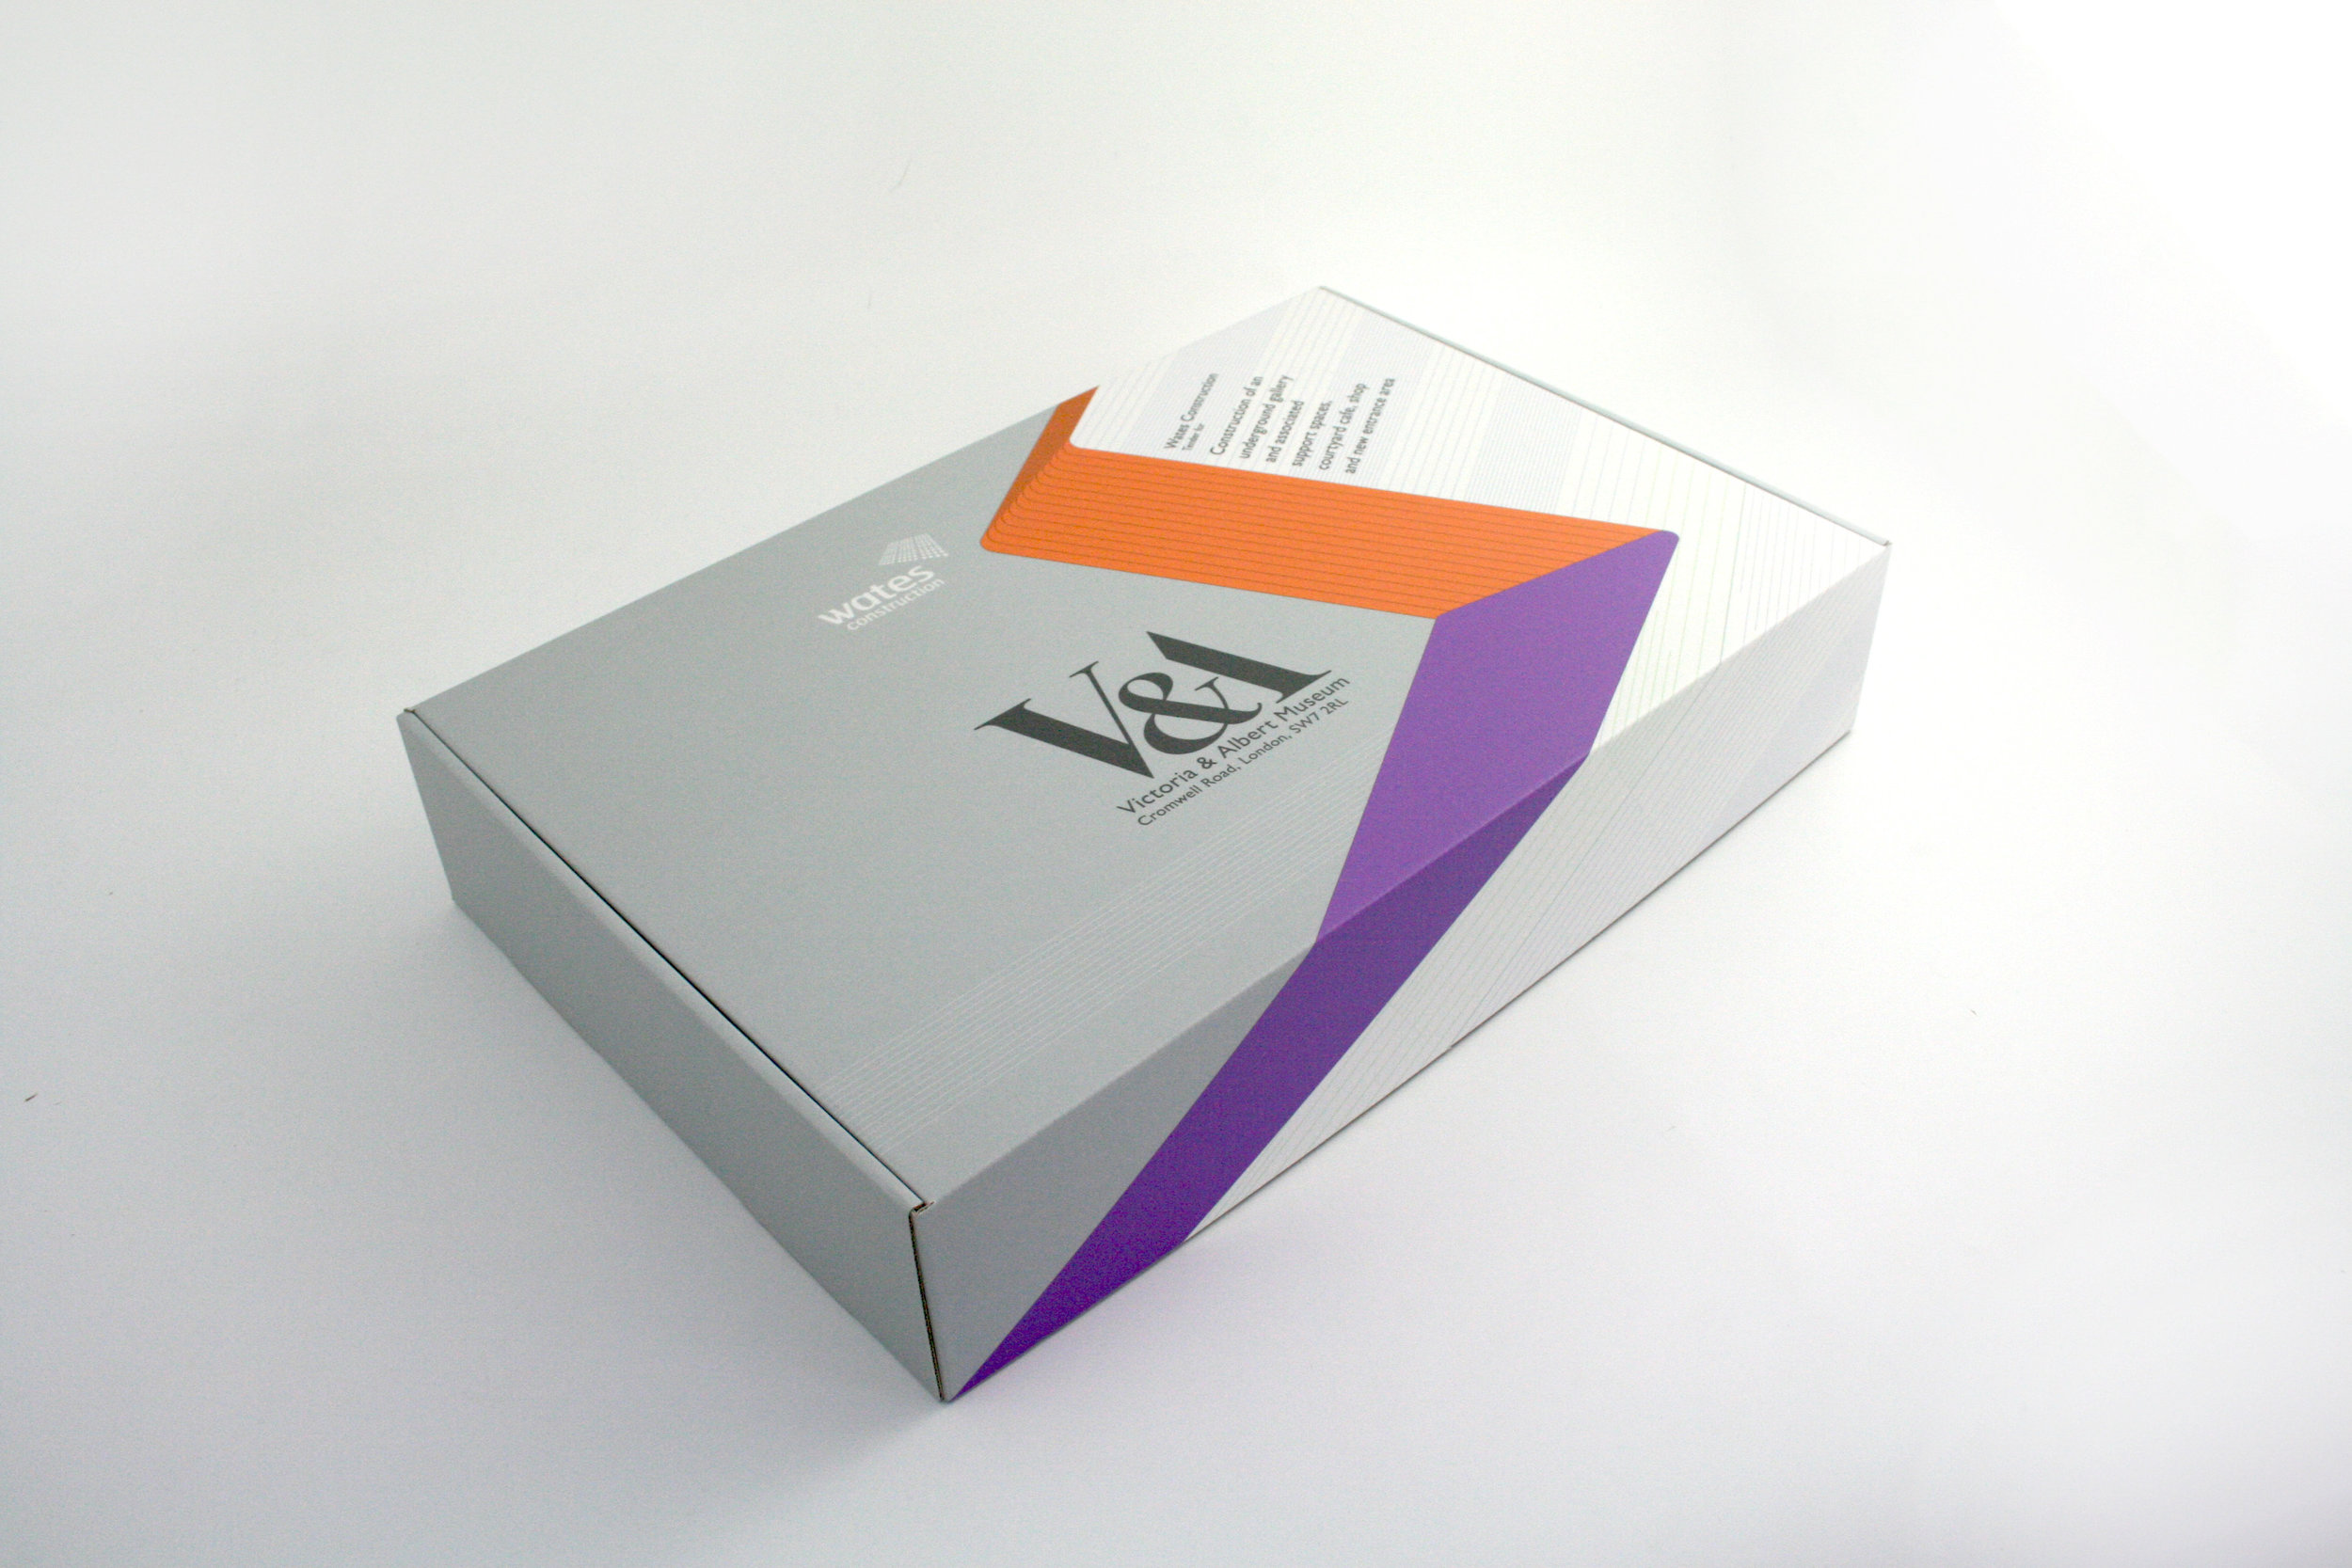 Amazon Boxes - Lightweight, printed paper over board.